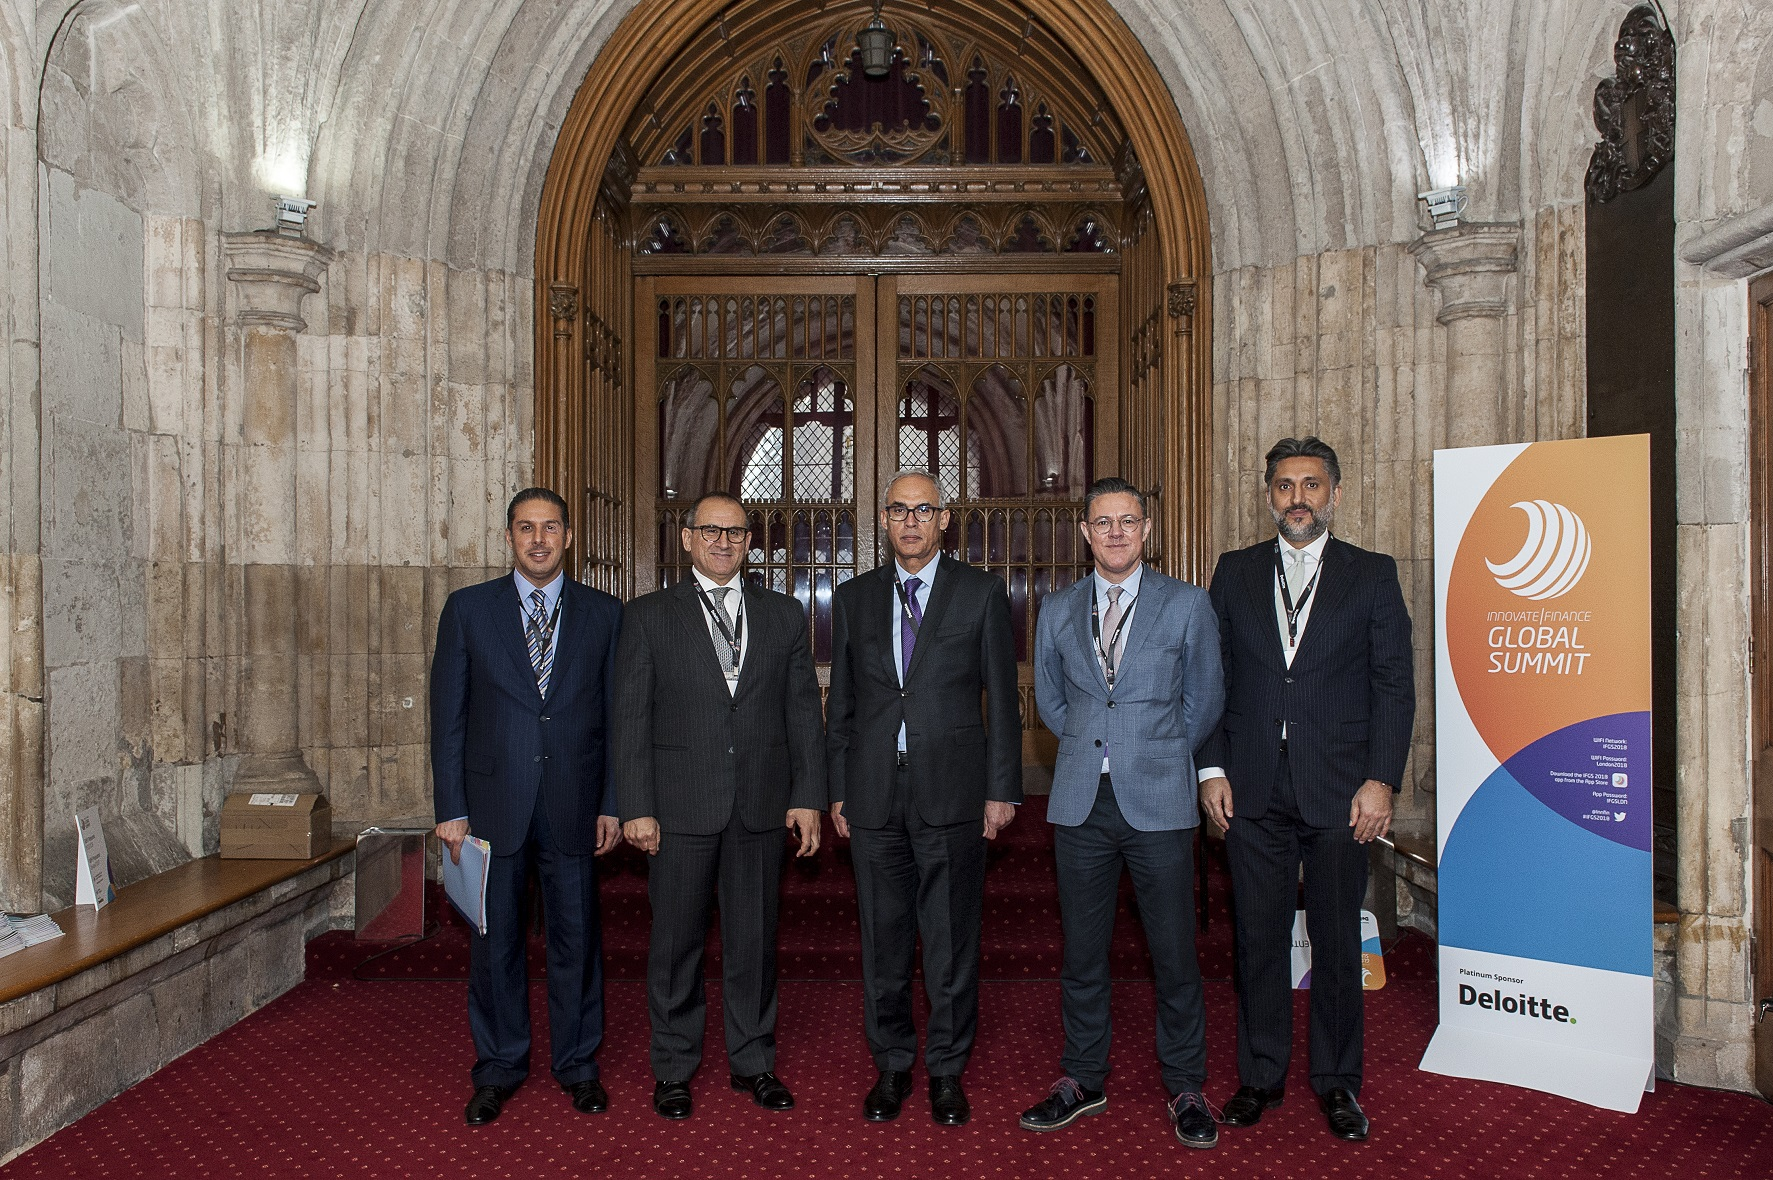 Bahrain EDB, the MoIC and the CBB went to London to wow global investors and business leaders